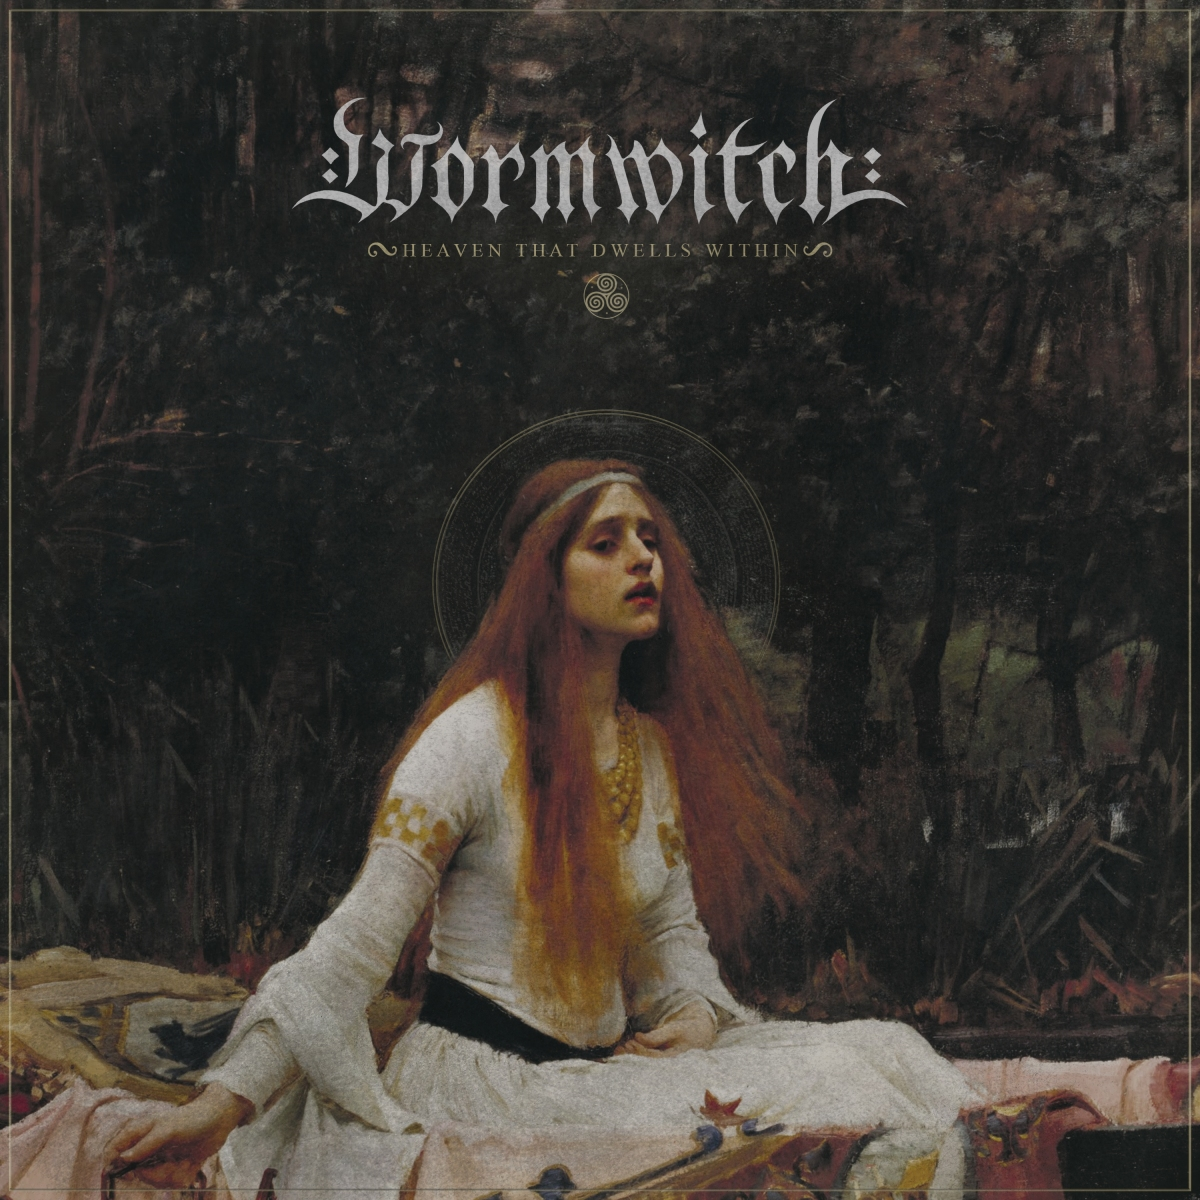 Album Review: Heaven That Dwells Within- Wormwitch